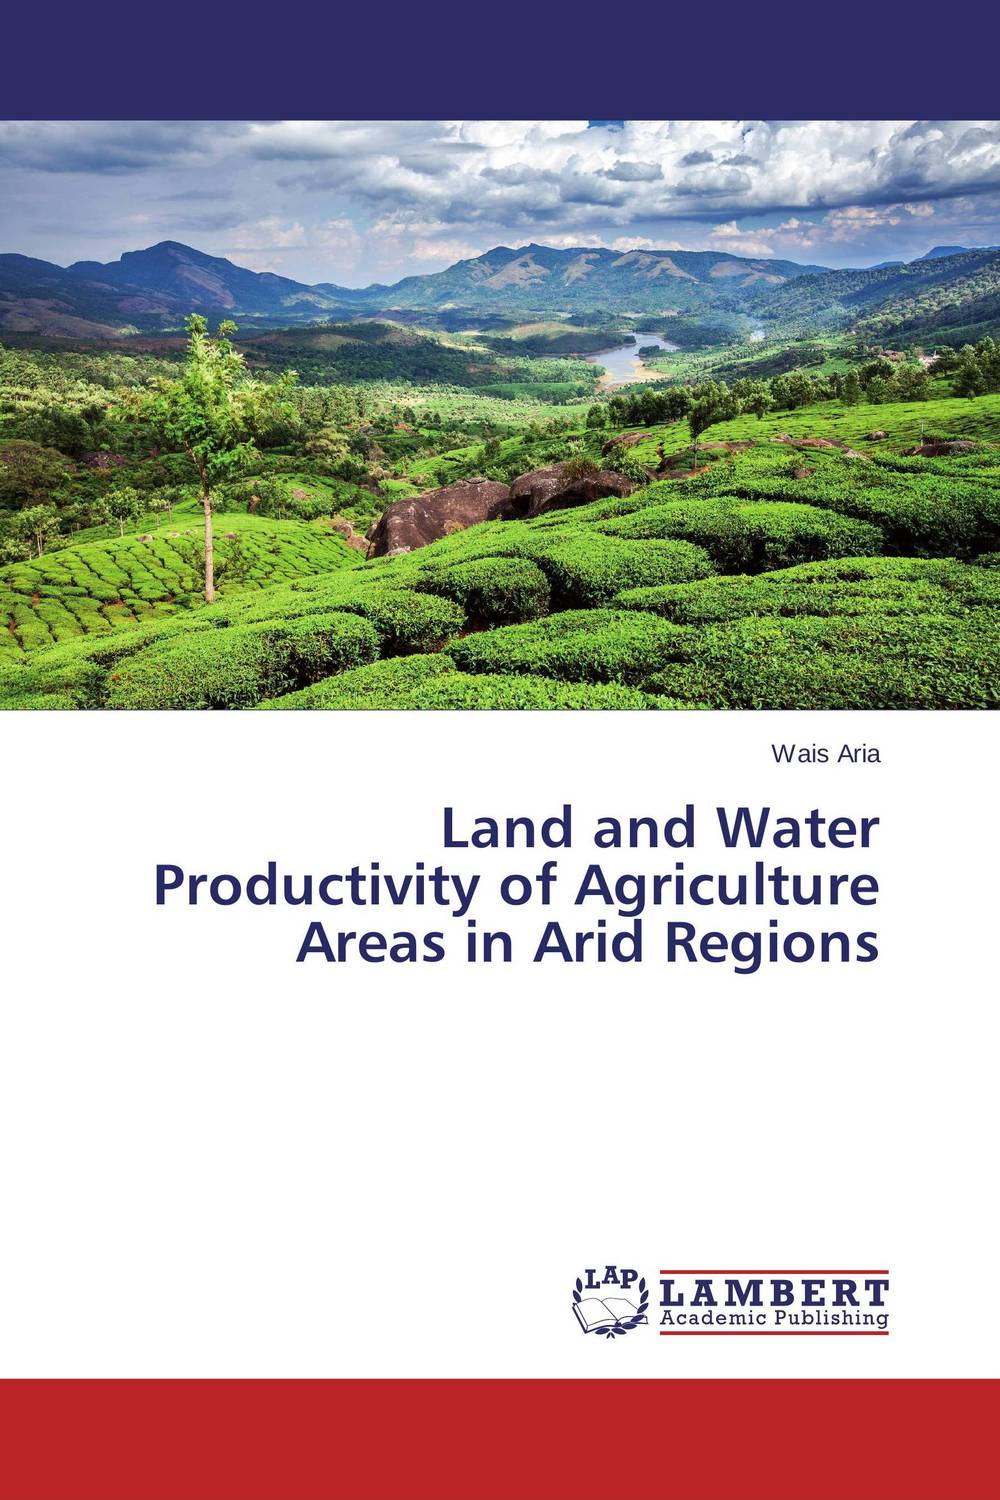 Land and Water Productivity of Agriculture Areas in Arid Regions farm level adoption of water system innovations in semi arid areas